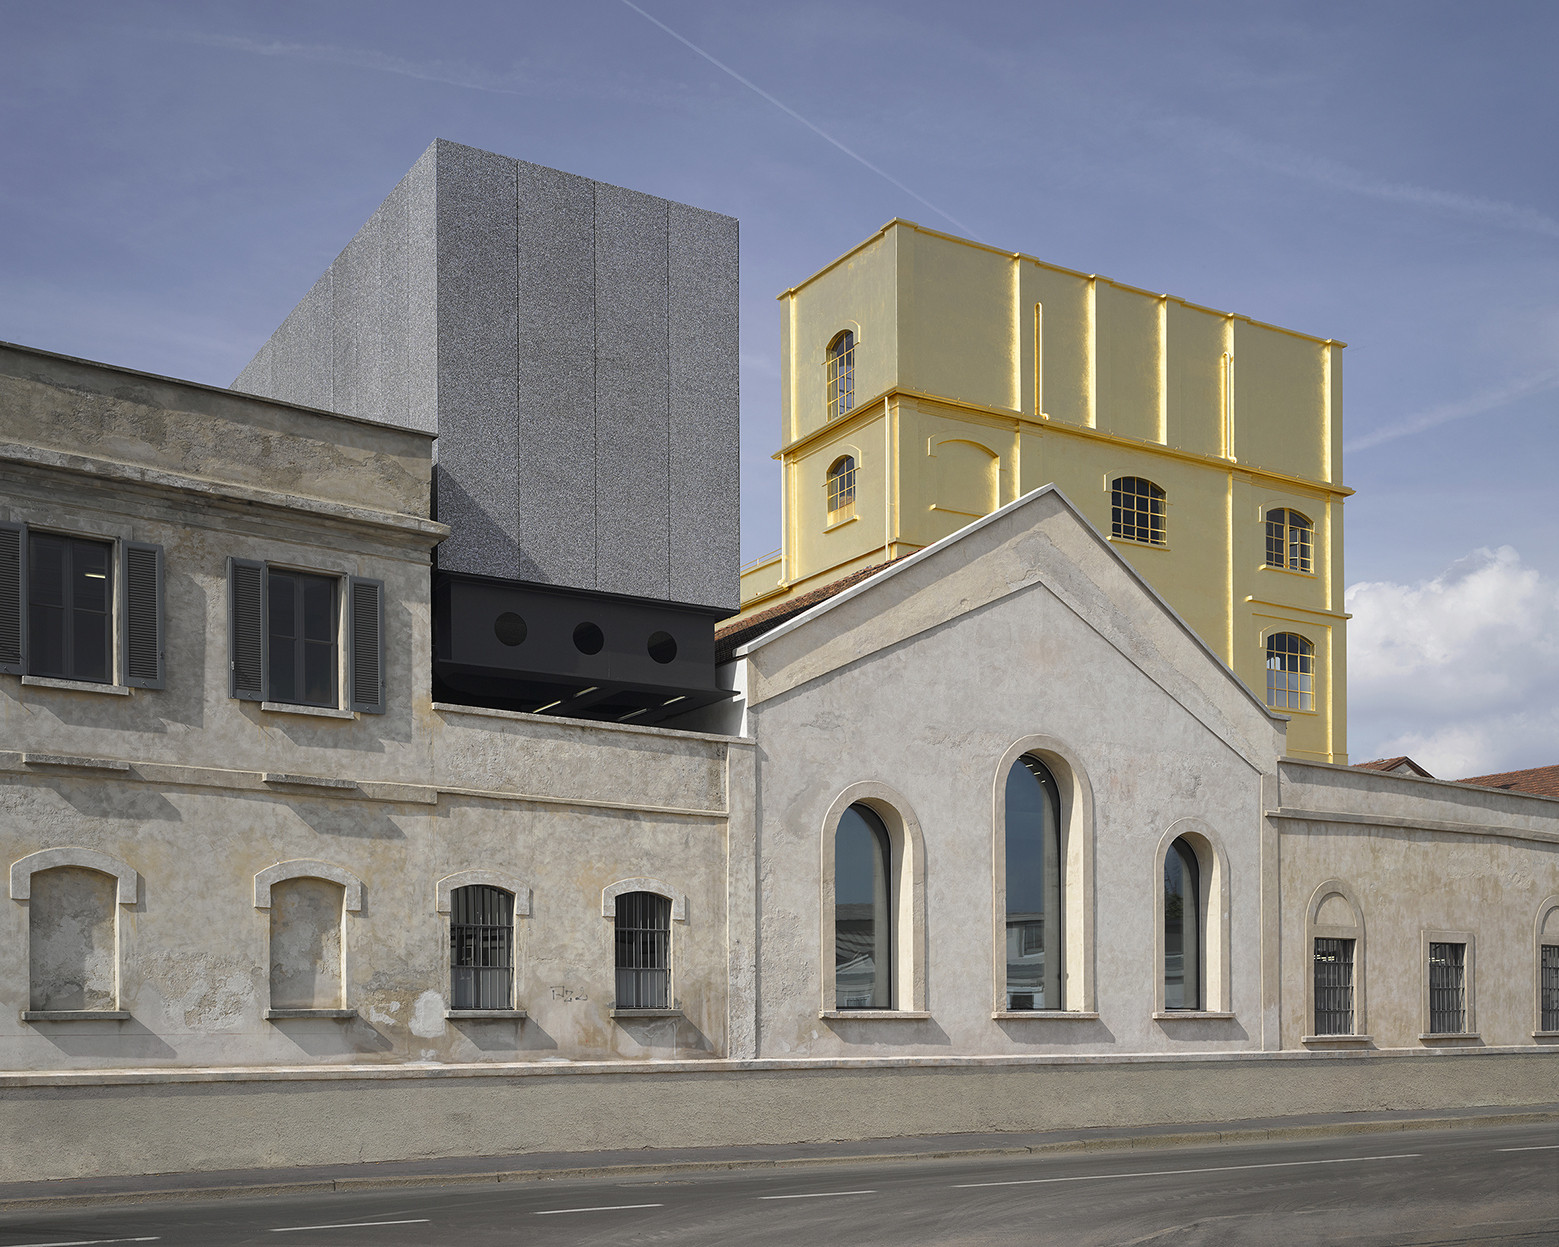 Rem Koolhaas On Preservation, The Fondazione Prada, And Tearing Down Part Of Paris, © Bas Princen – Fondazione Prada